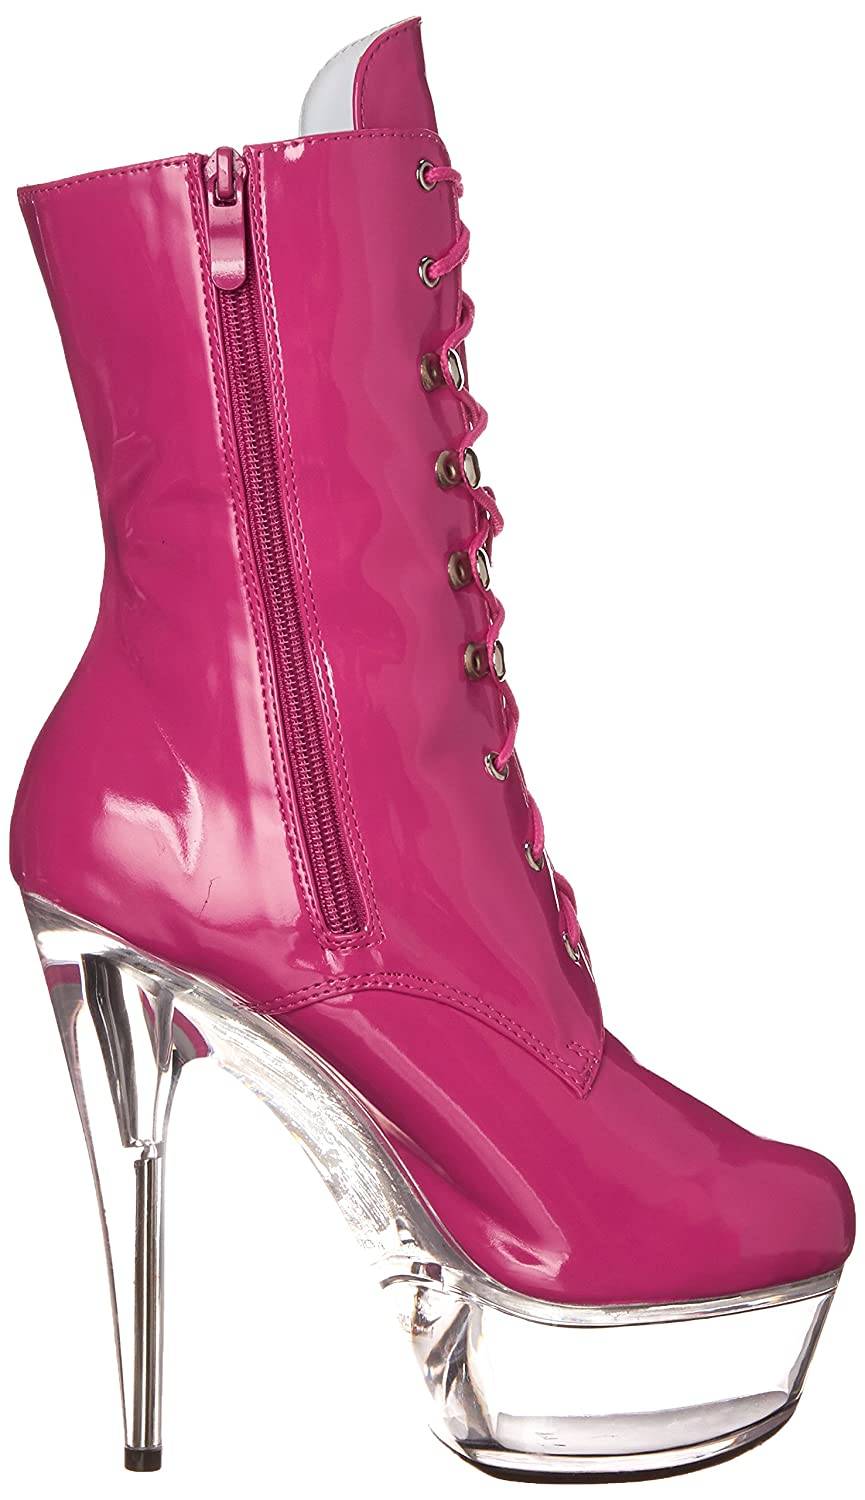 Ellie B000AROG3A Shoes Women's 609-Diana Boot B000AROG3A Ellie 11 B(M) US|Fuchsia 343e4f